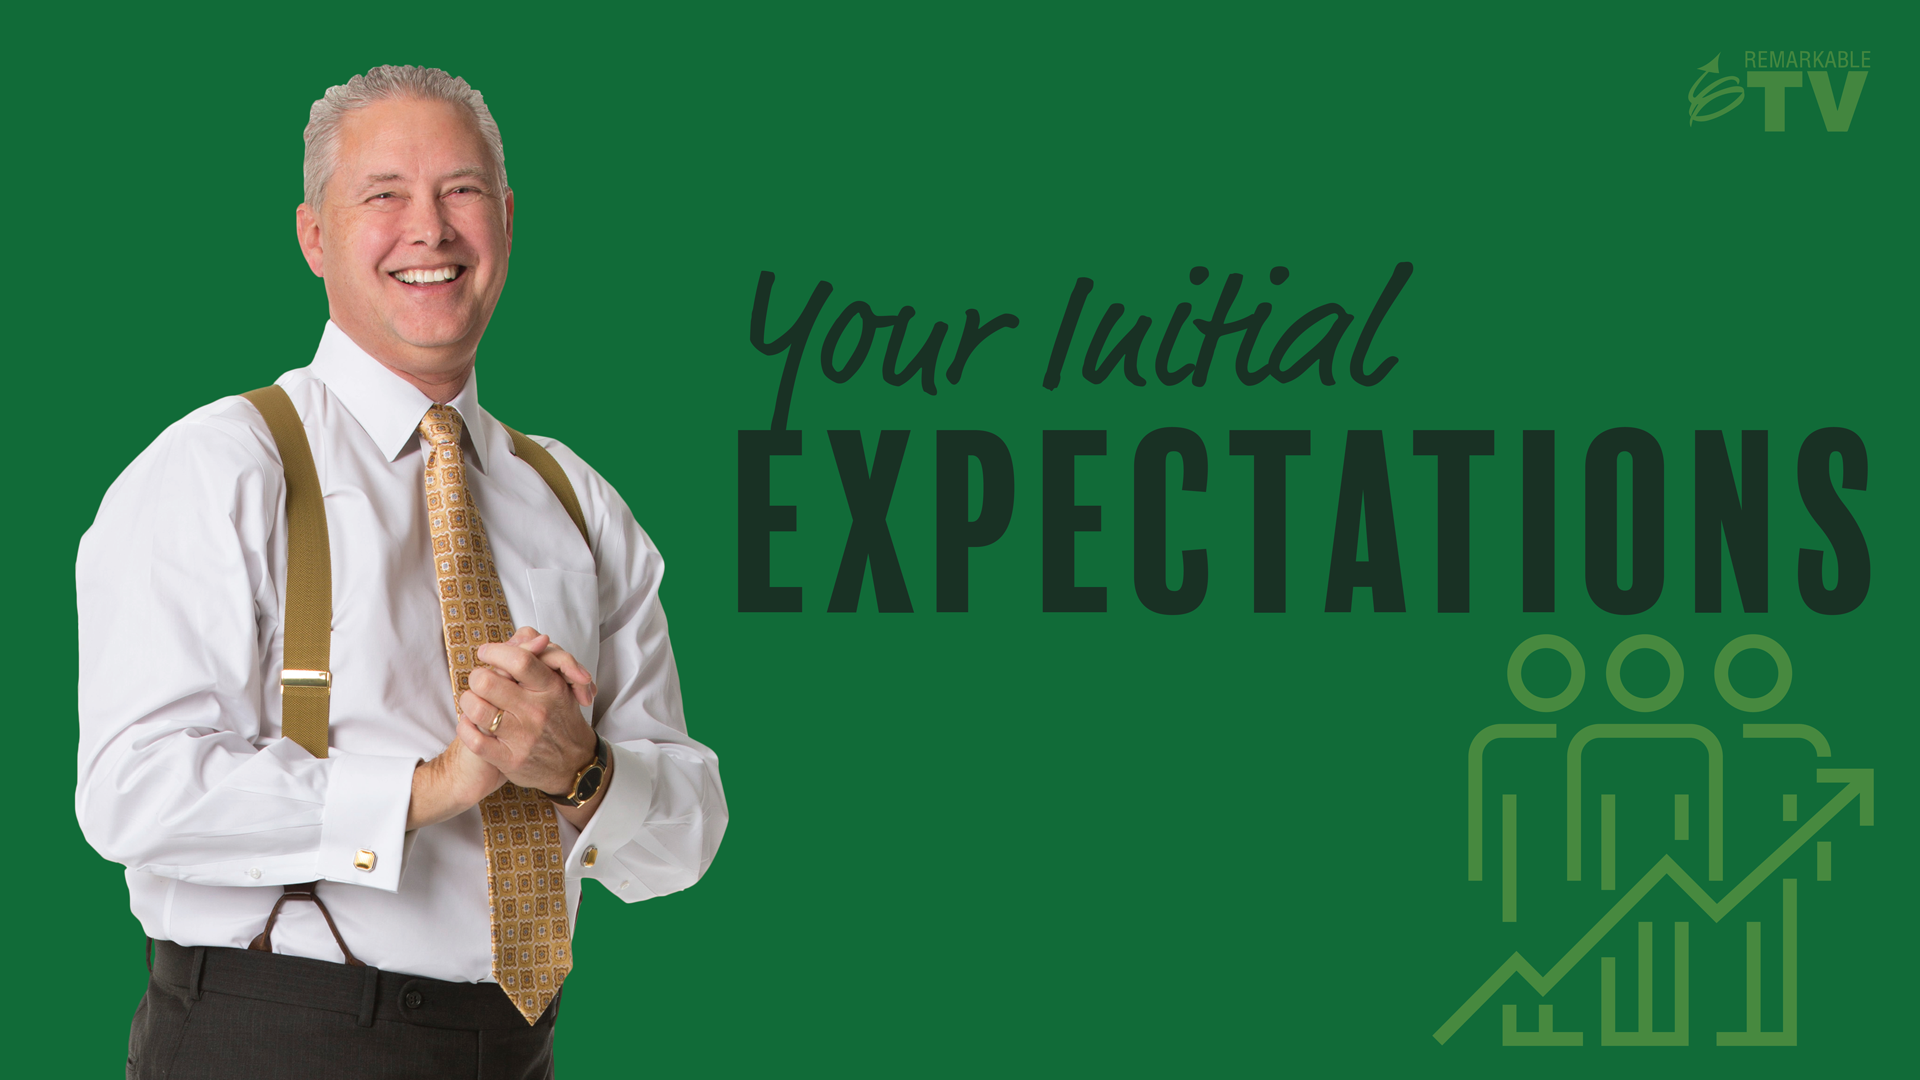 Your Initial Expectations - Video from Kevin Eikenberry